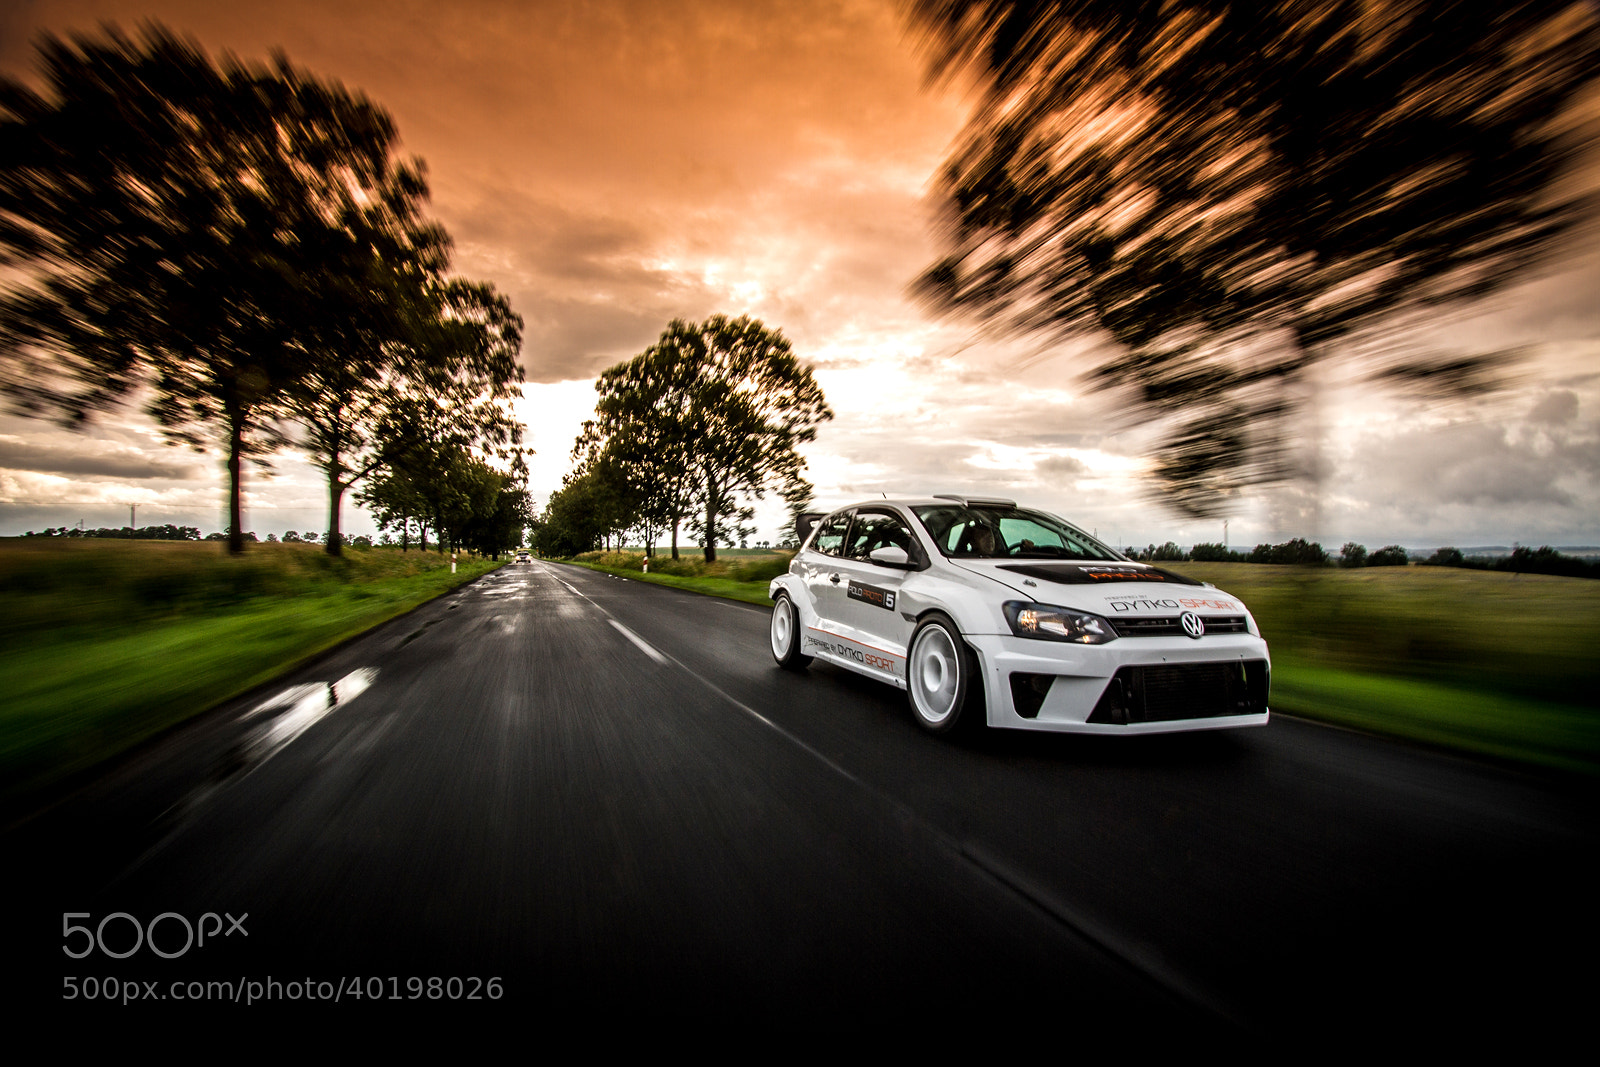 Photograph Polo Proto Rally Car by Maciej Niechwiadowicz on 500px